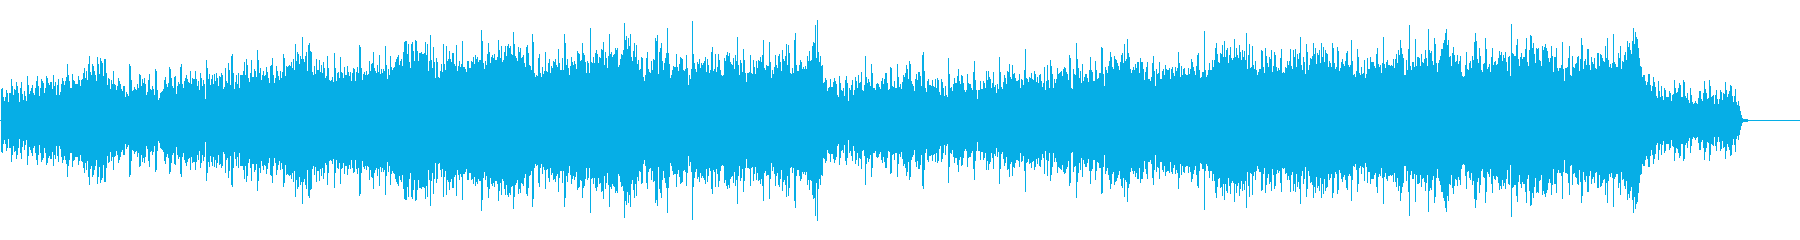 Refreshing dawn, corporate VP, CM, positive's reproduced waveform